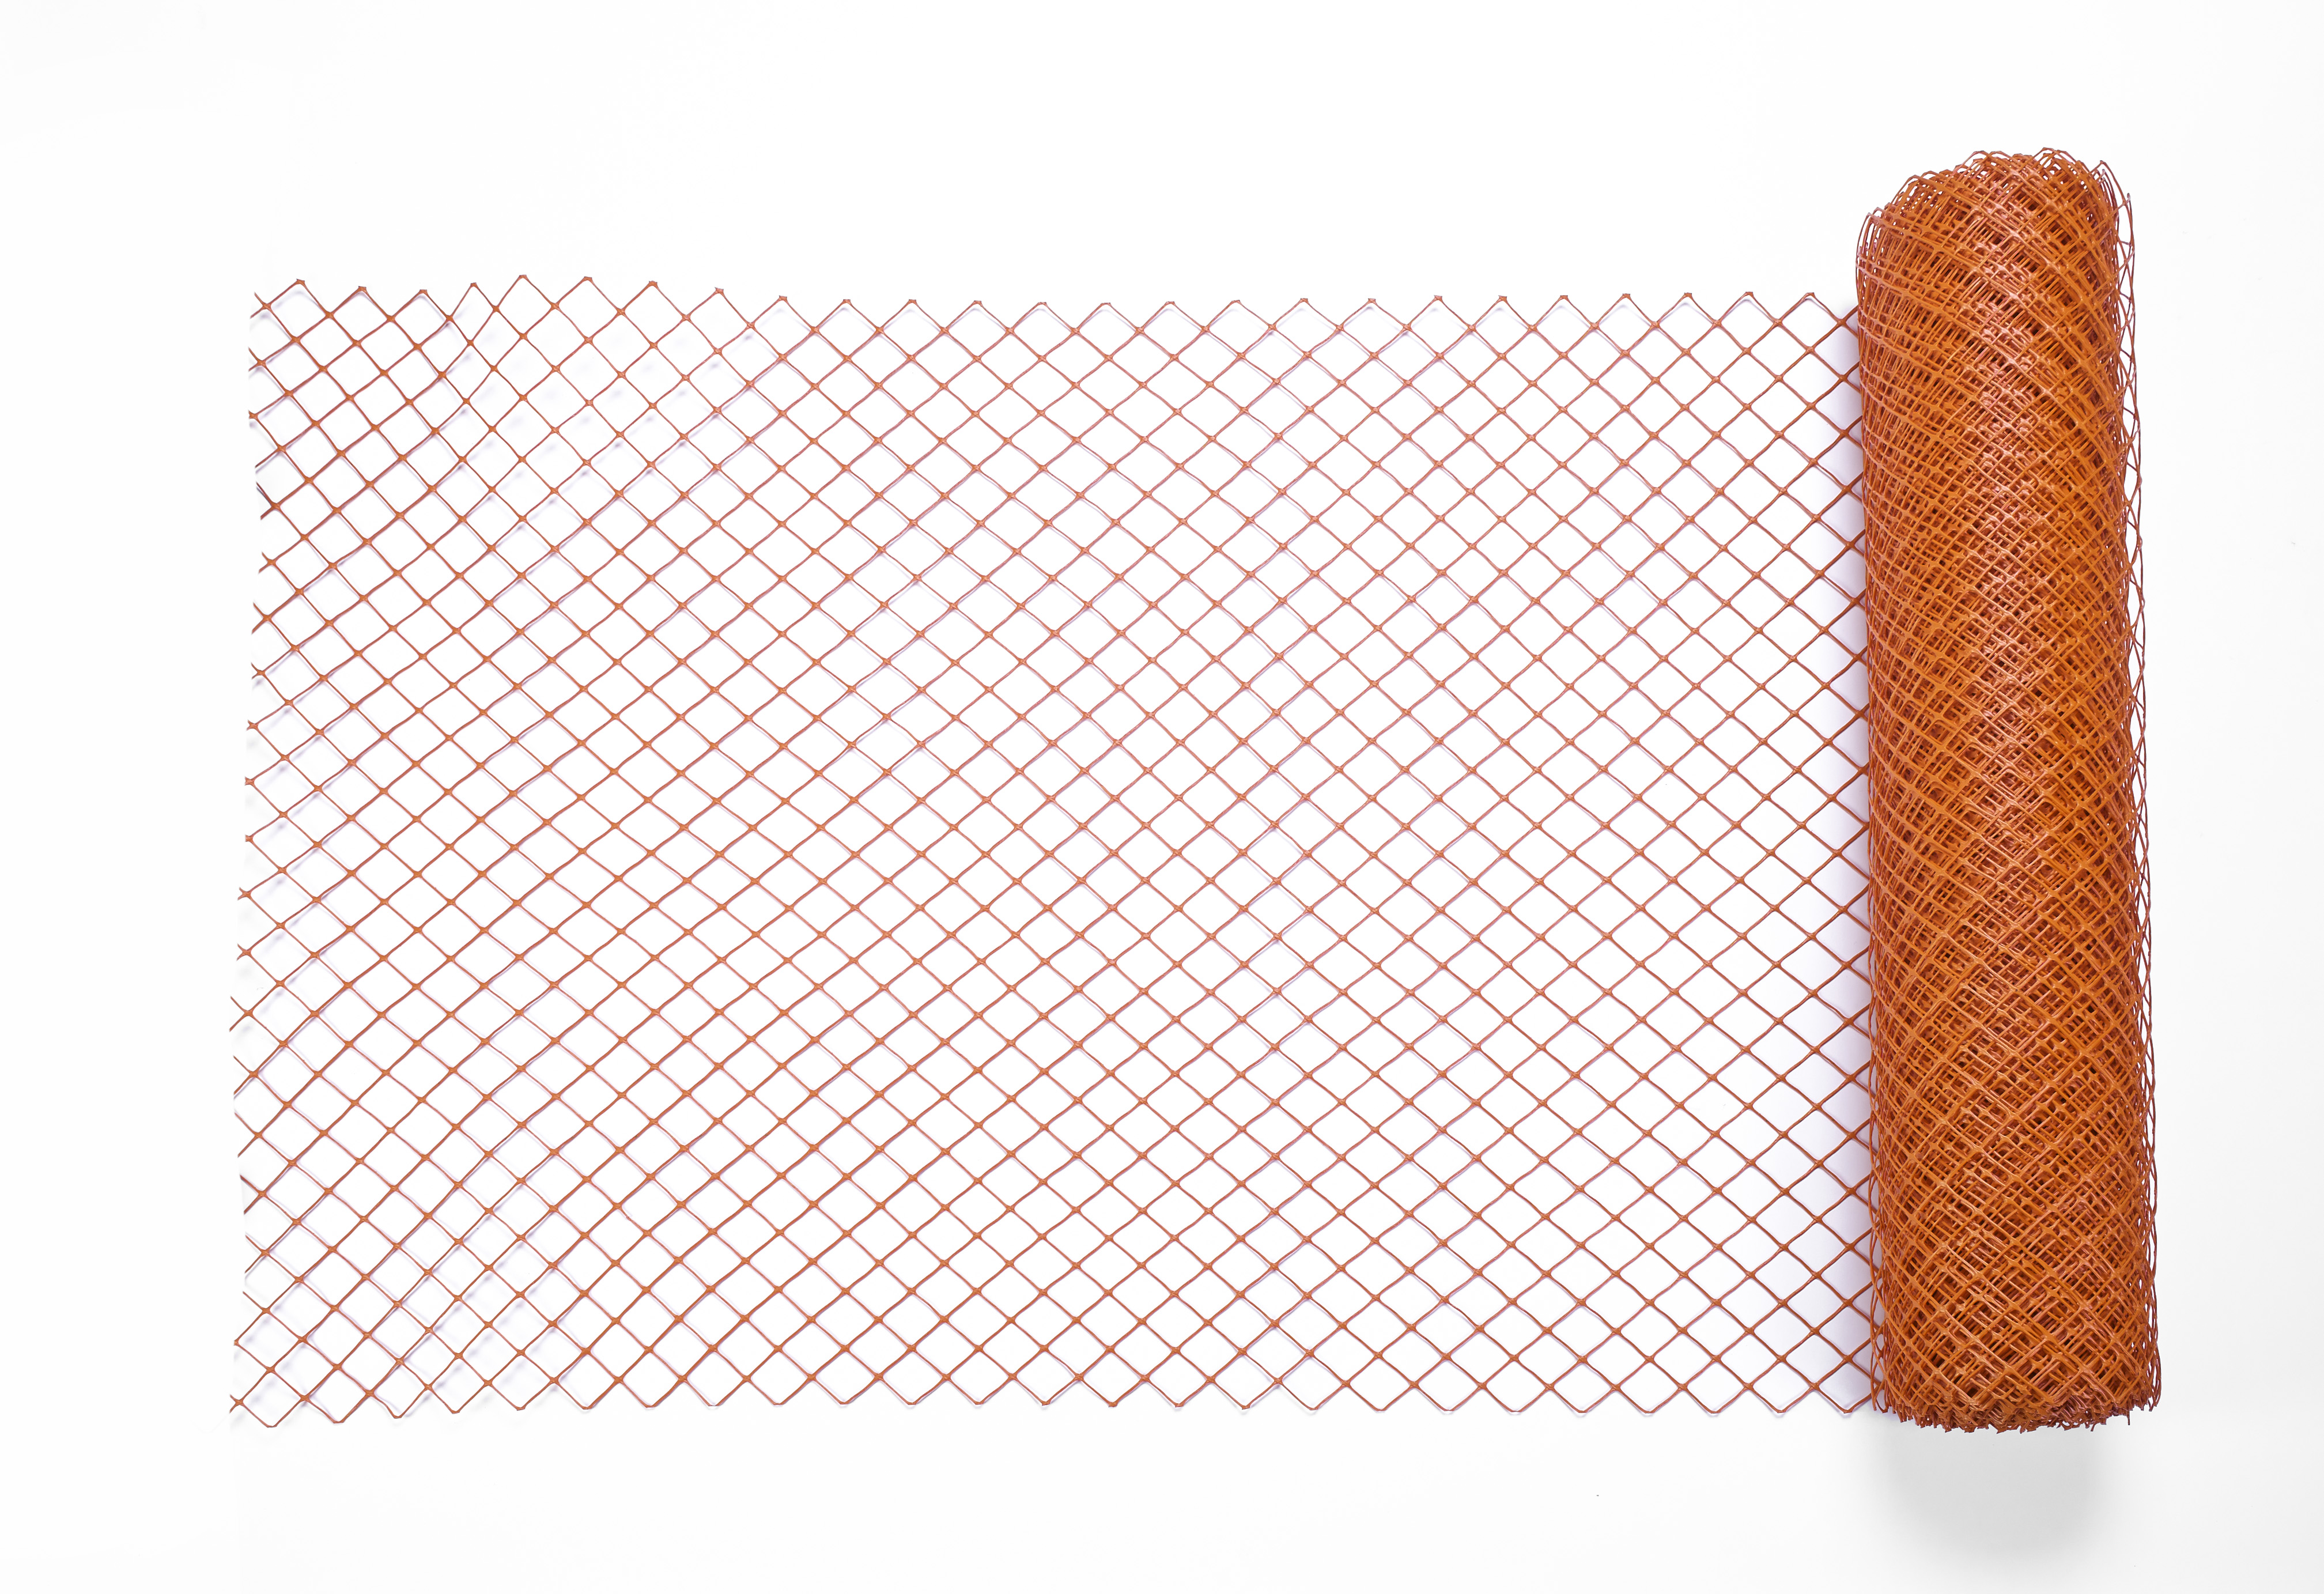 14988-45-0, High Density Polyethylene (HDPE) Diamond Link Safety Fence, 100 ft. Length x 4 ft. Width, Orange, Mutual Industries